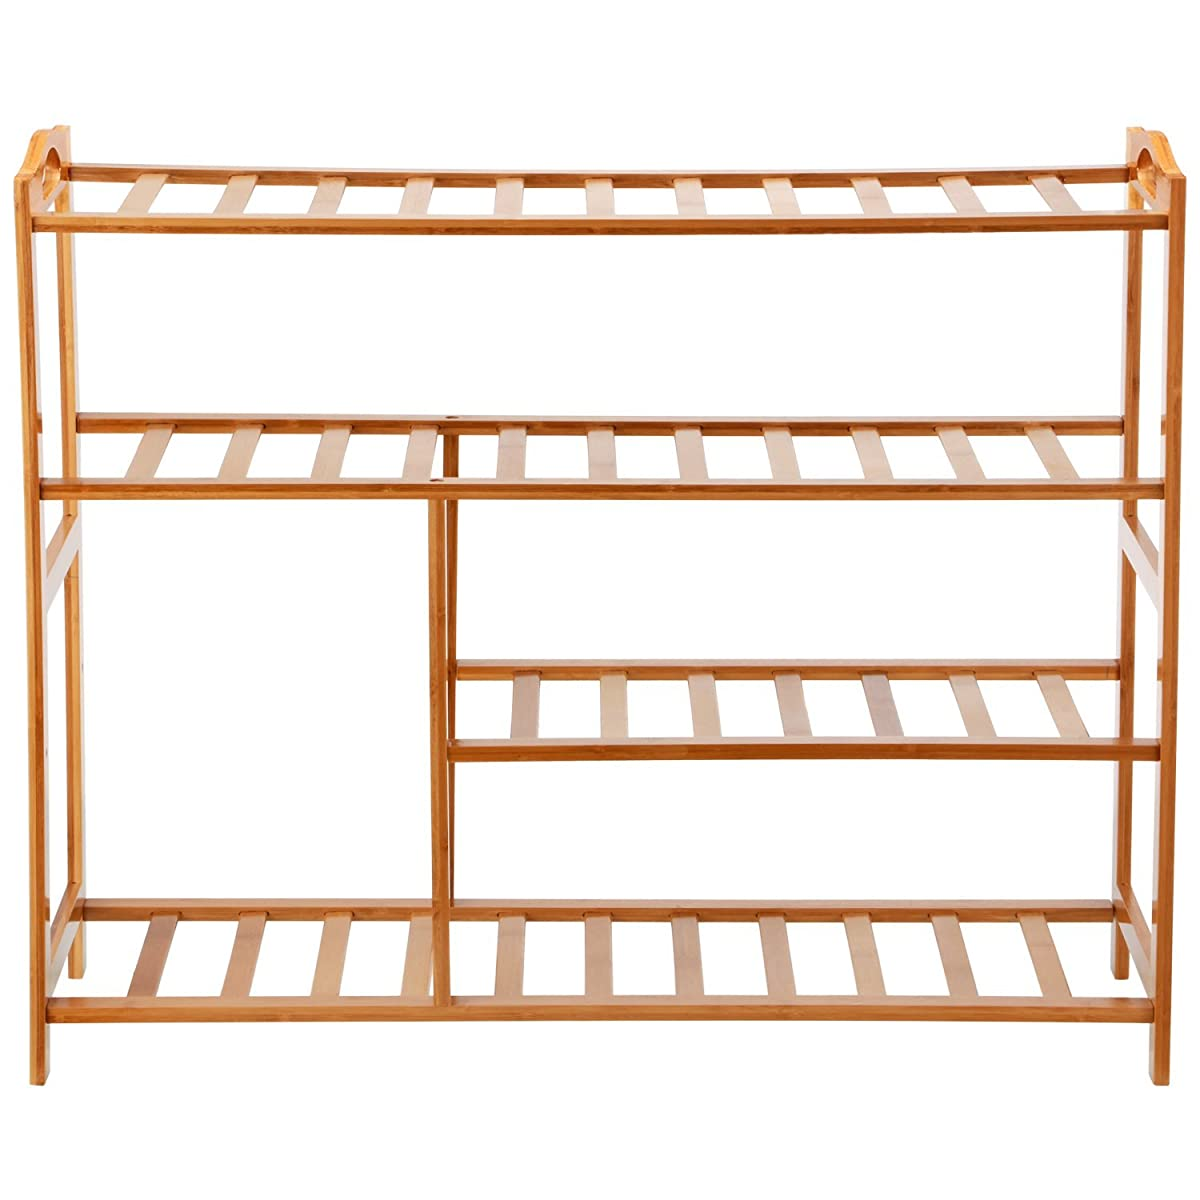 """Ollieroo Thickened Natural Bamboo Shoe Rack Shoe Shelf Storage Organizer for About 13 Pairs of Shoes Size 31.5""""X10.3""""X26"""" (4 Tier)"""